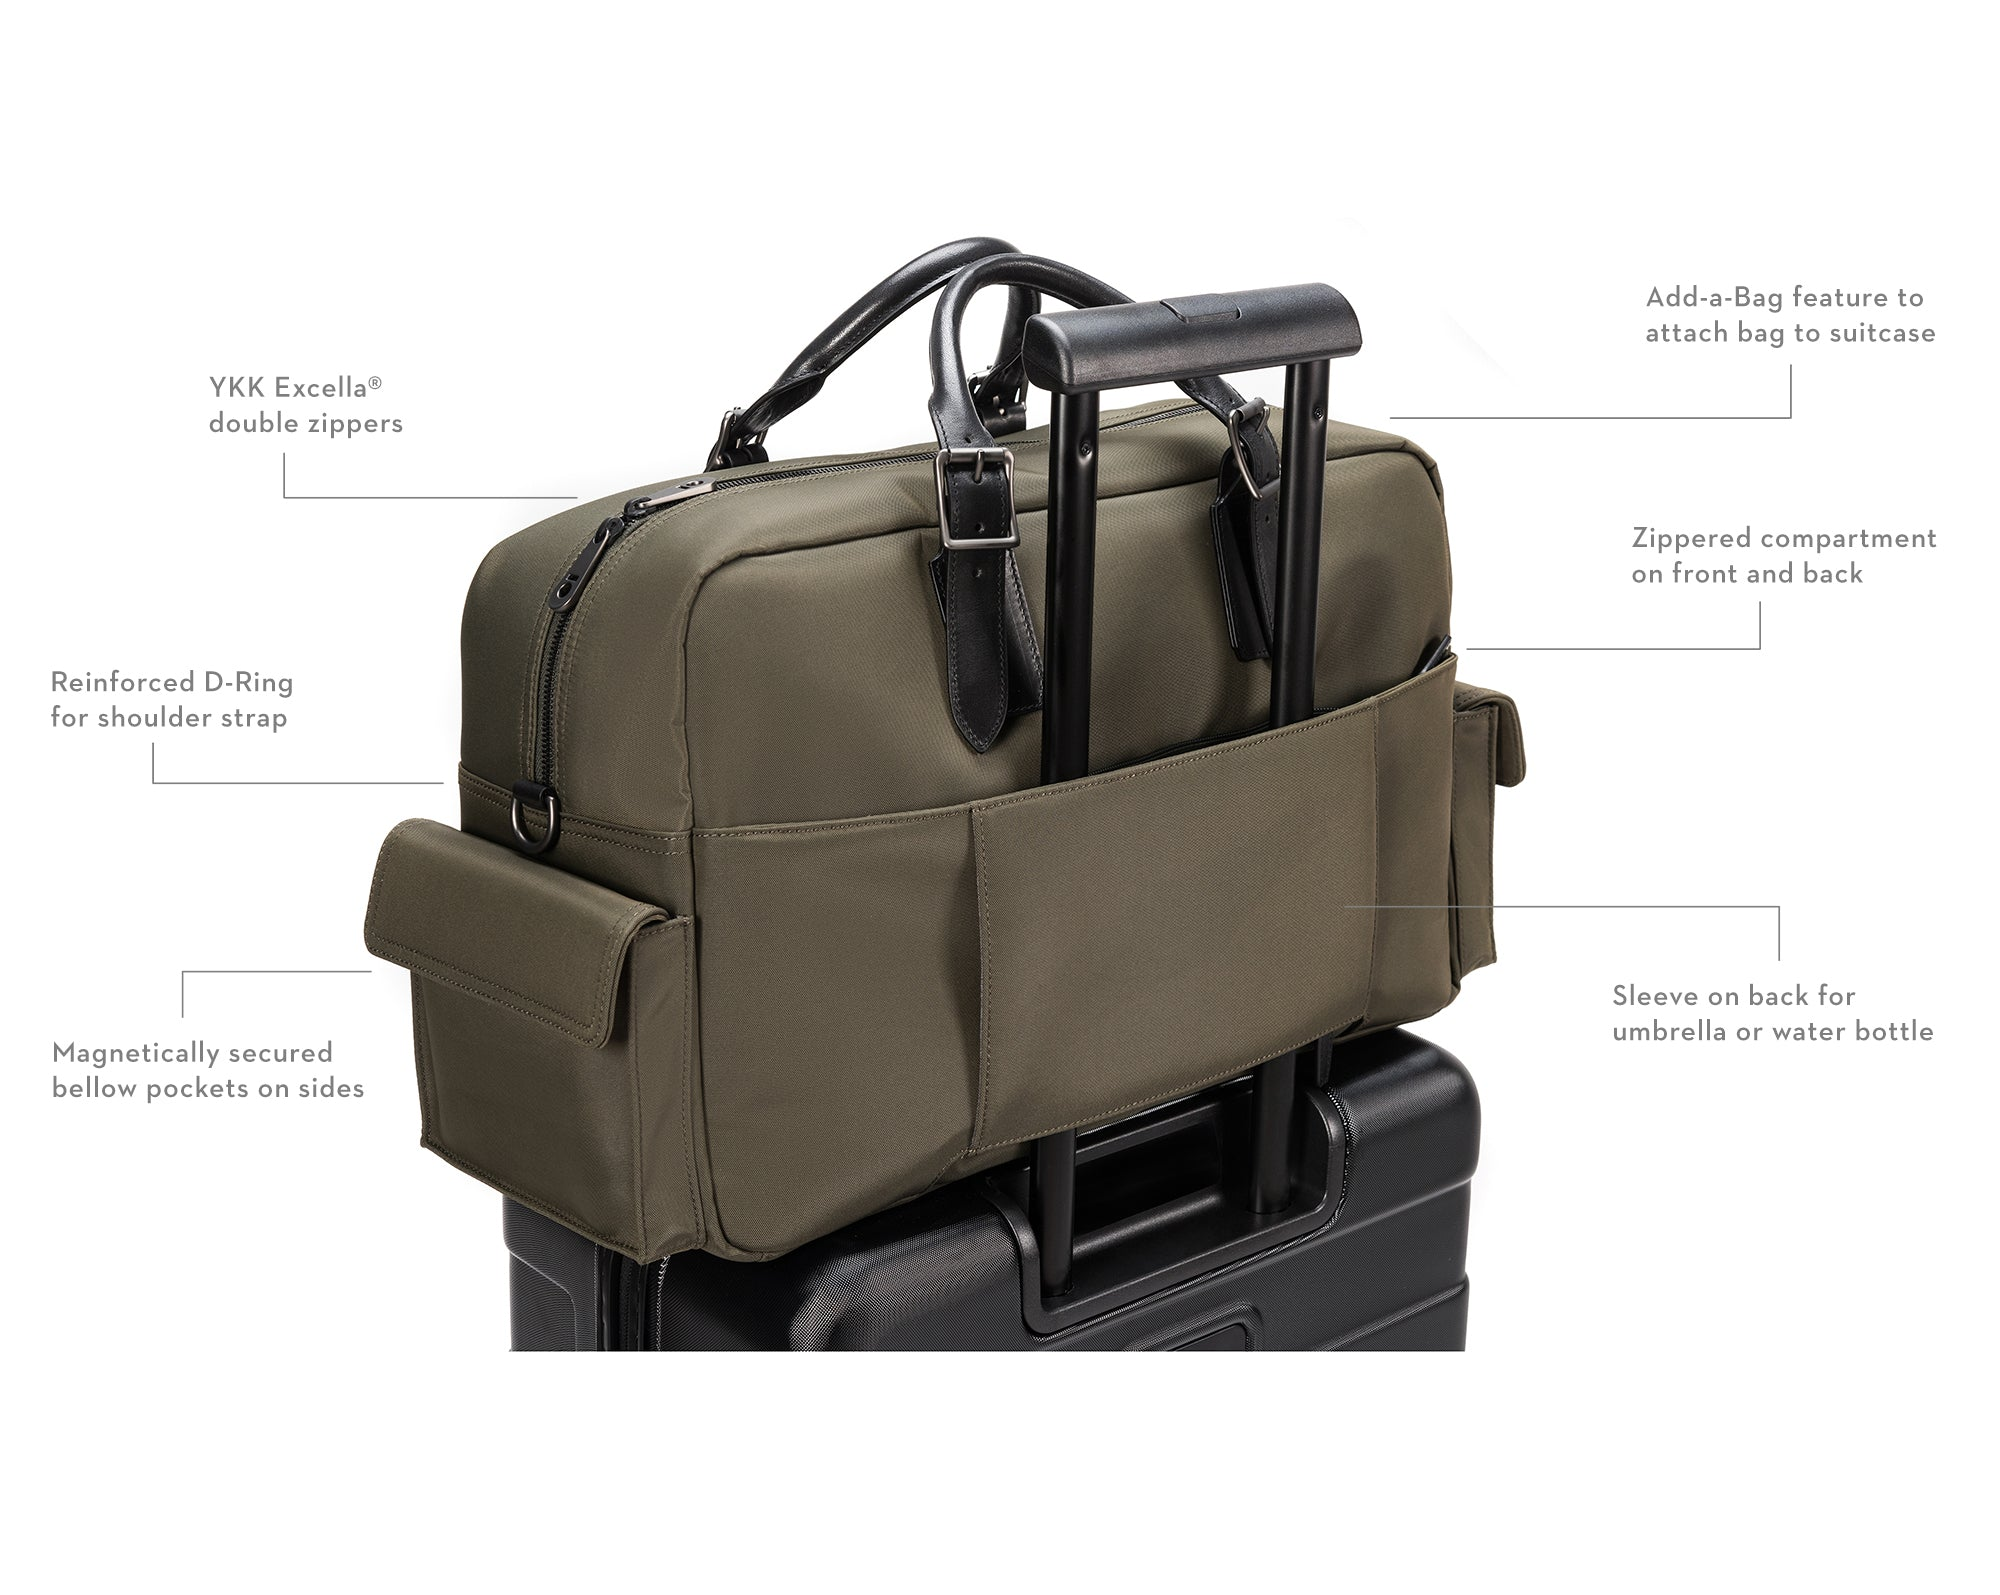 Stuart & Lau Campaign Bag with add-a-bag suitcase feature